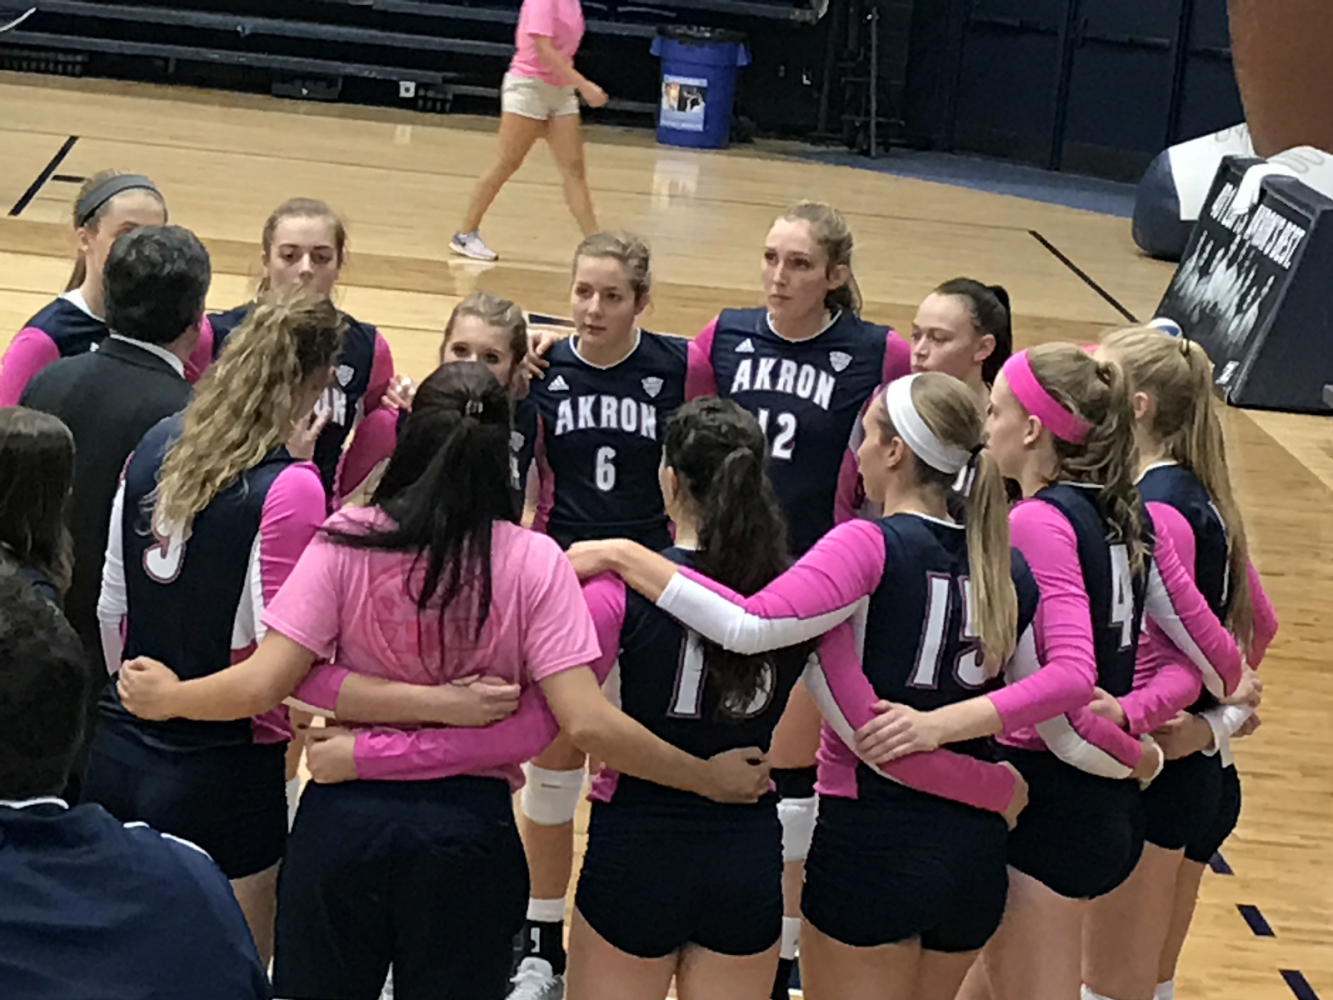 The Zips Volleyball team huddles prior to the start of their match against Northern Illinois on Saturday Oct. 14.